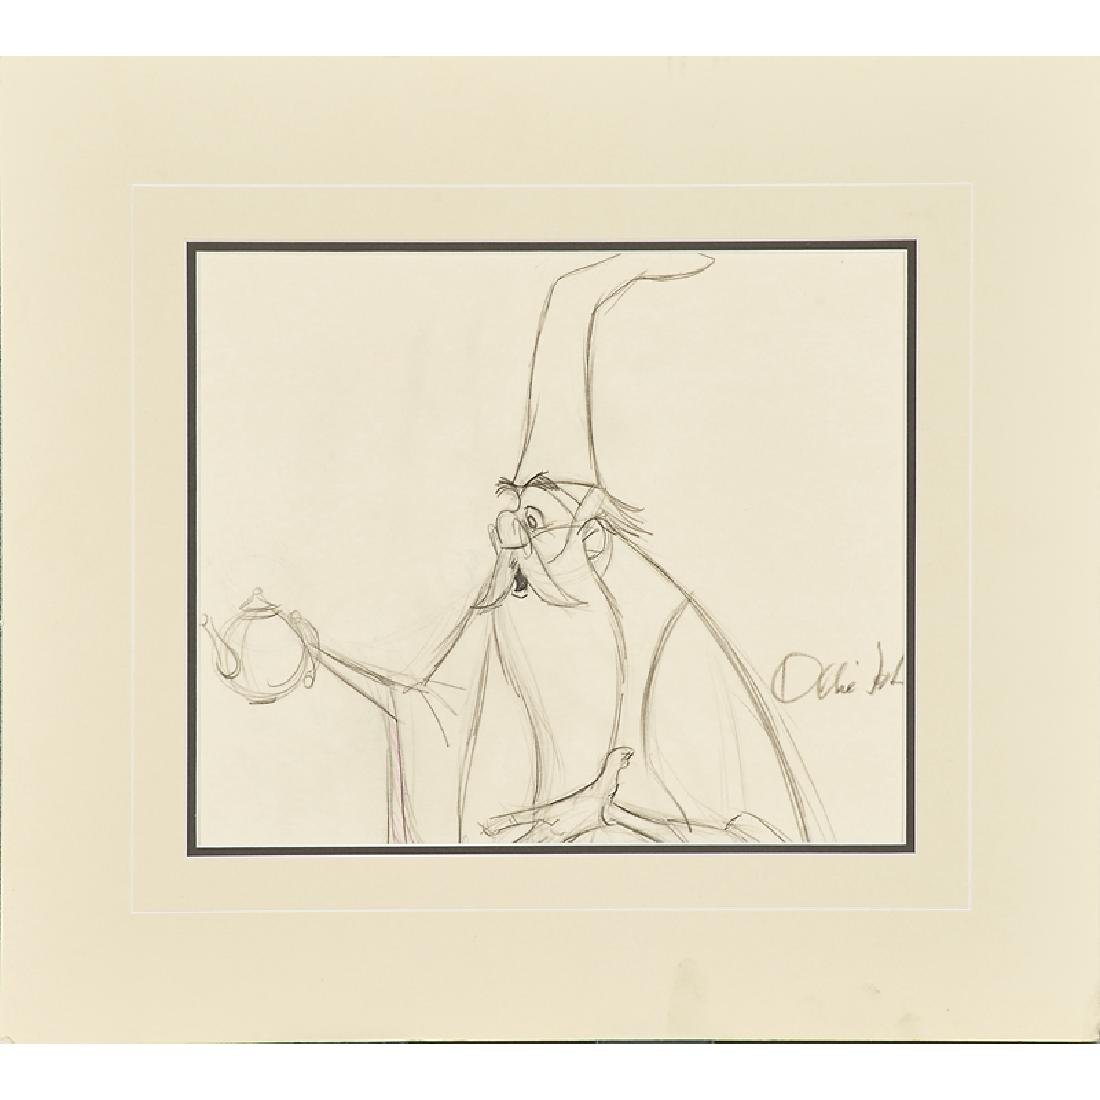 WALT DISNEY ORIGINAL PRODUCTION SKETCH